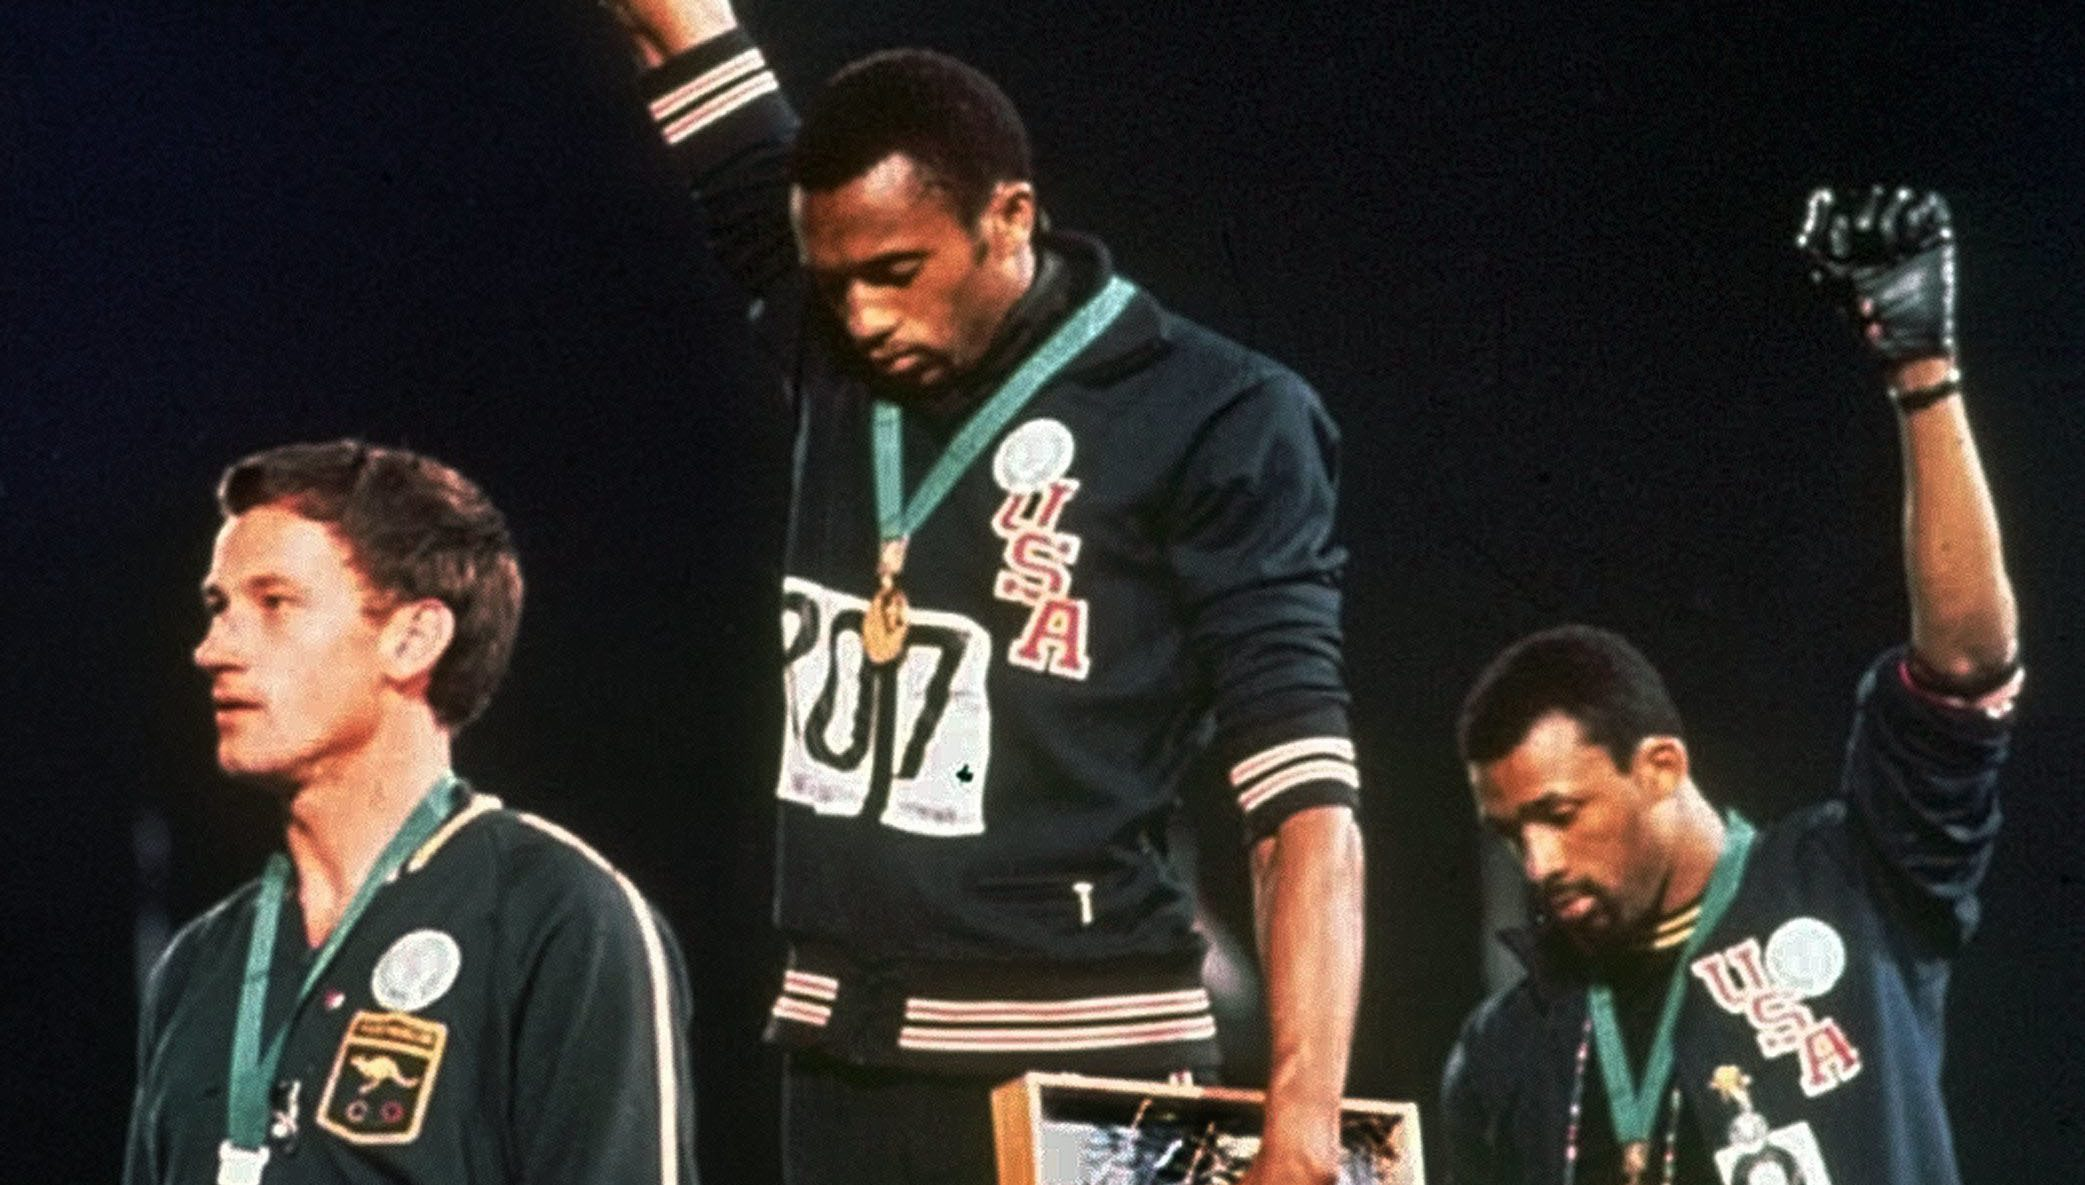 Watch '1968' and 'Bring the Fire: A Conversation with John Carlos' - OlympicTalk | NBC Sports